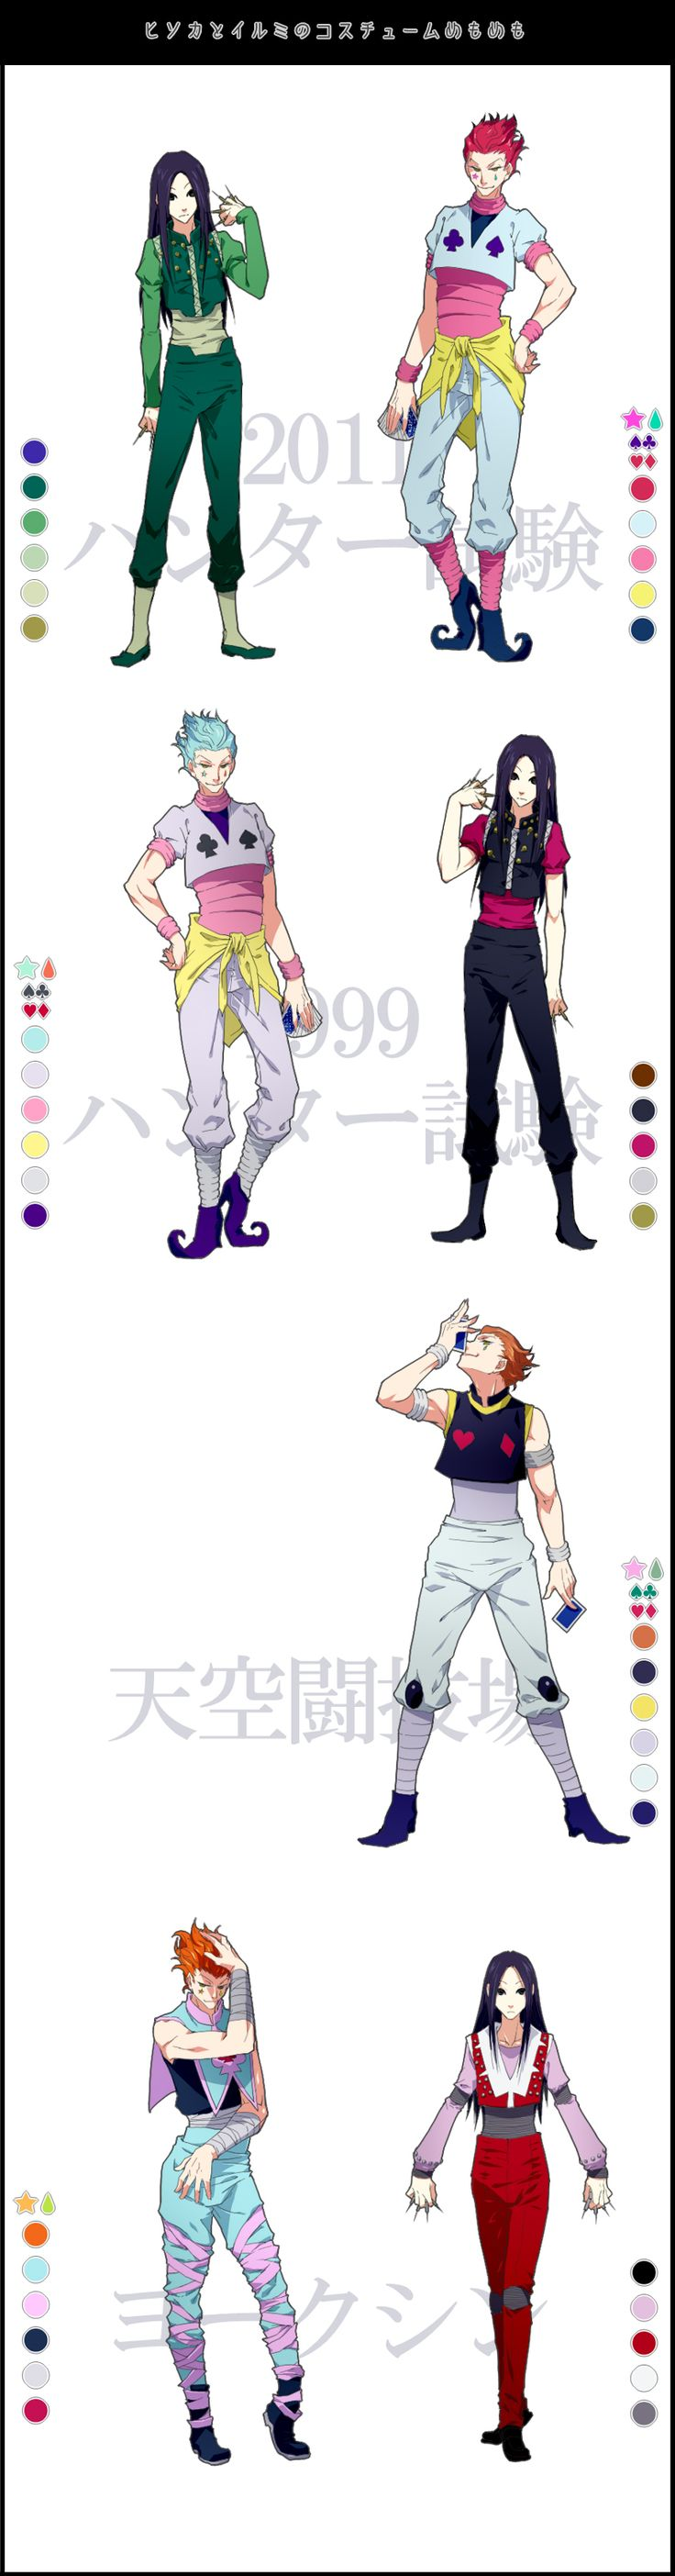 Hunter x Hunter Differences between new/old character design